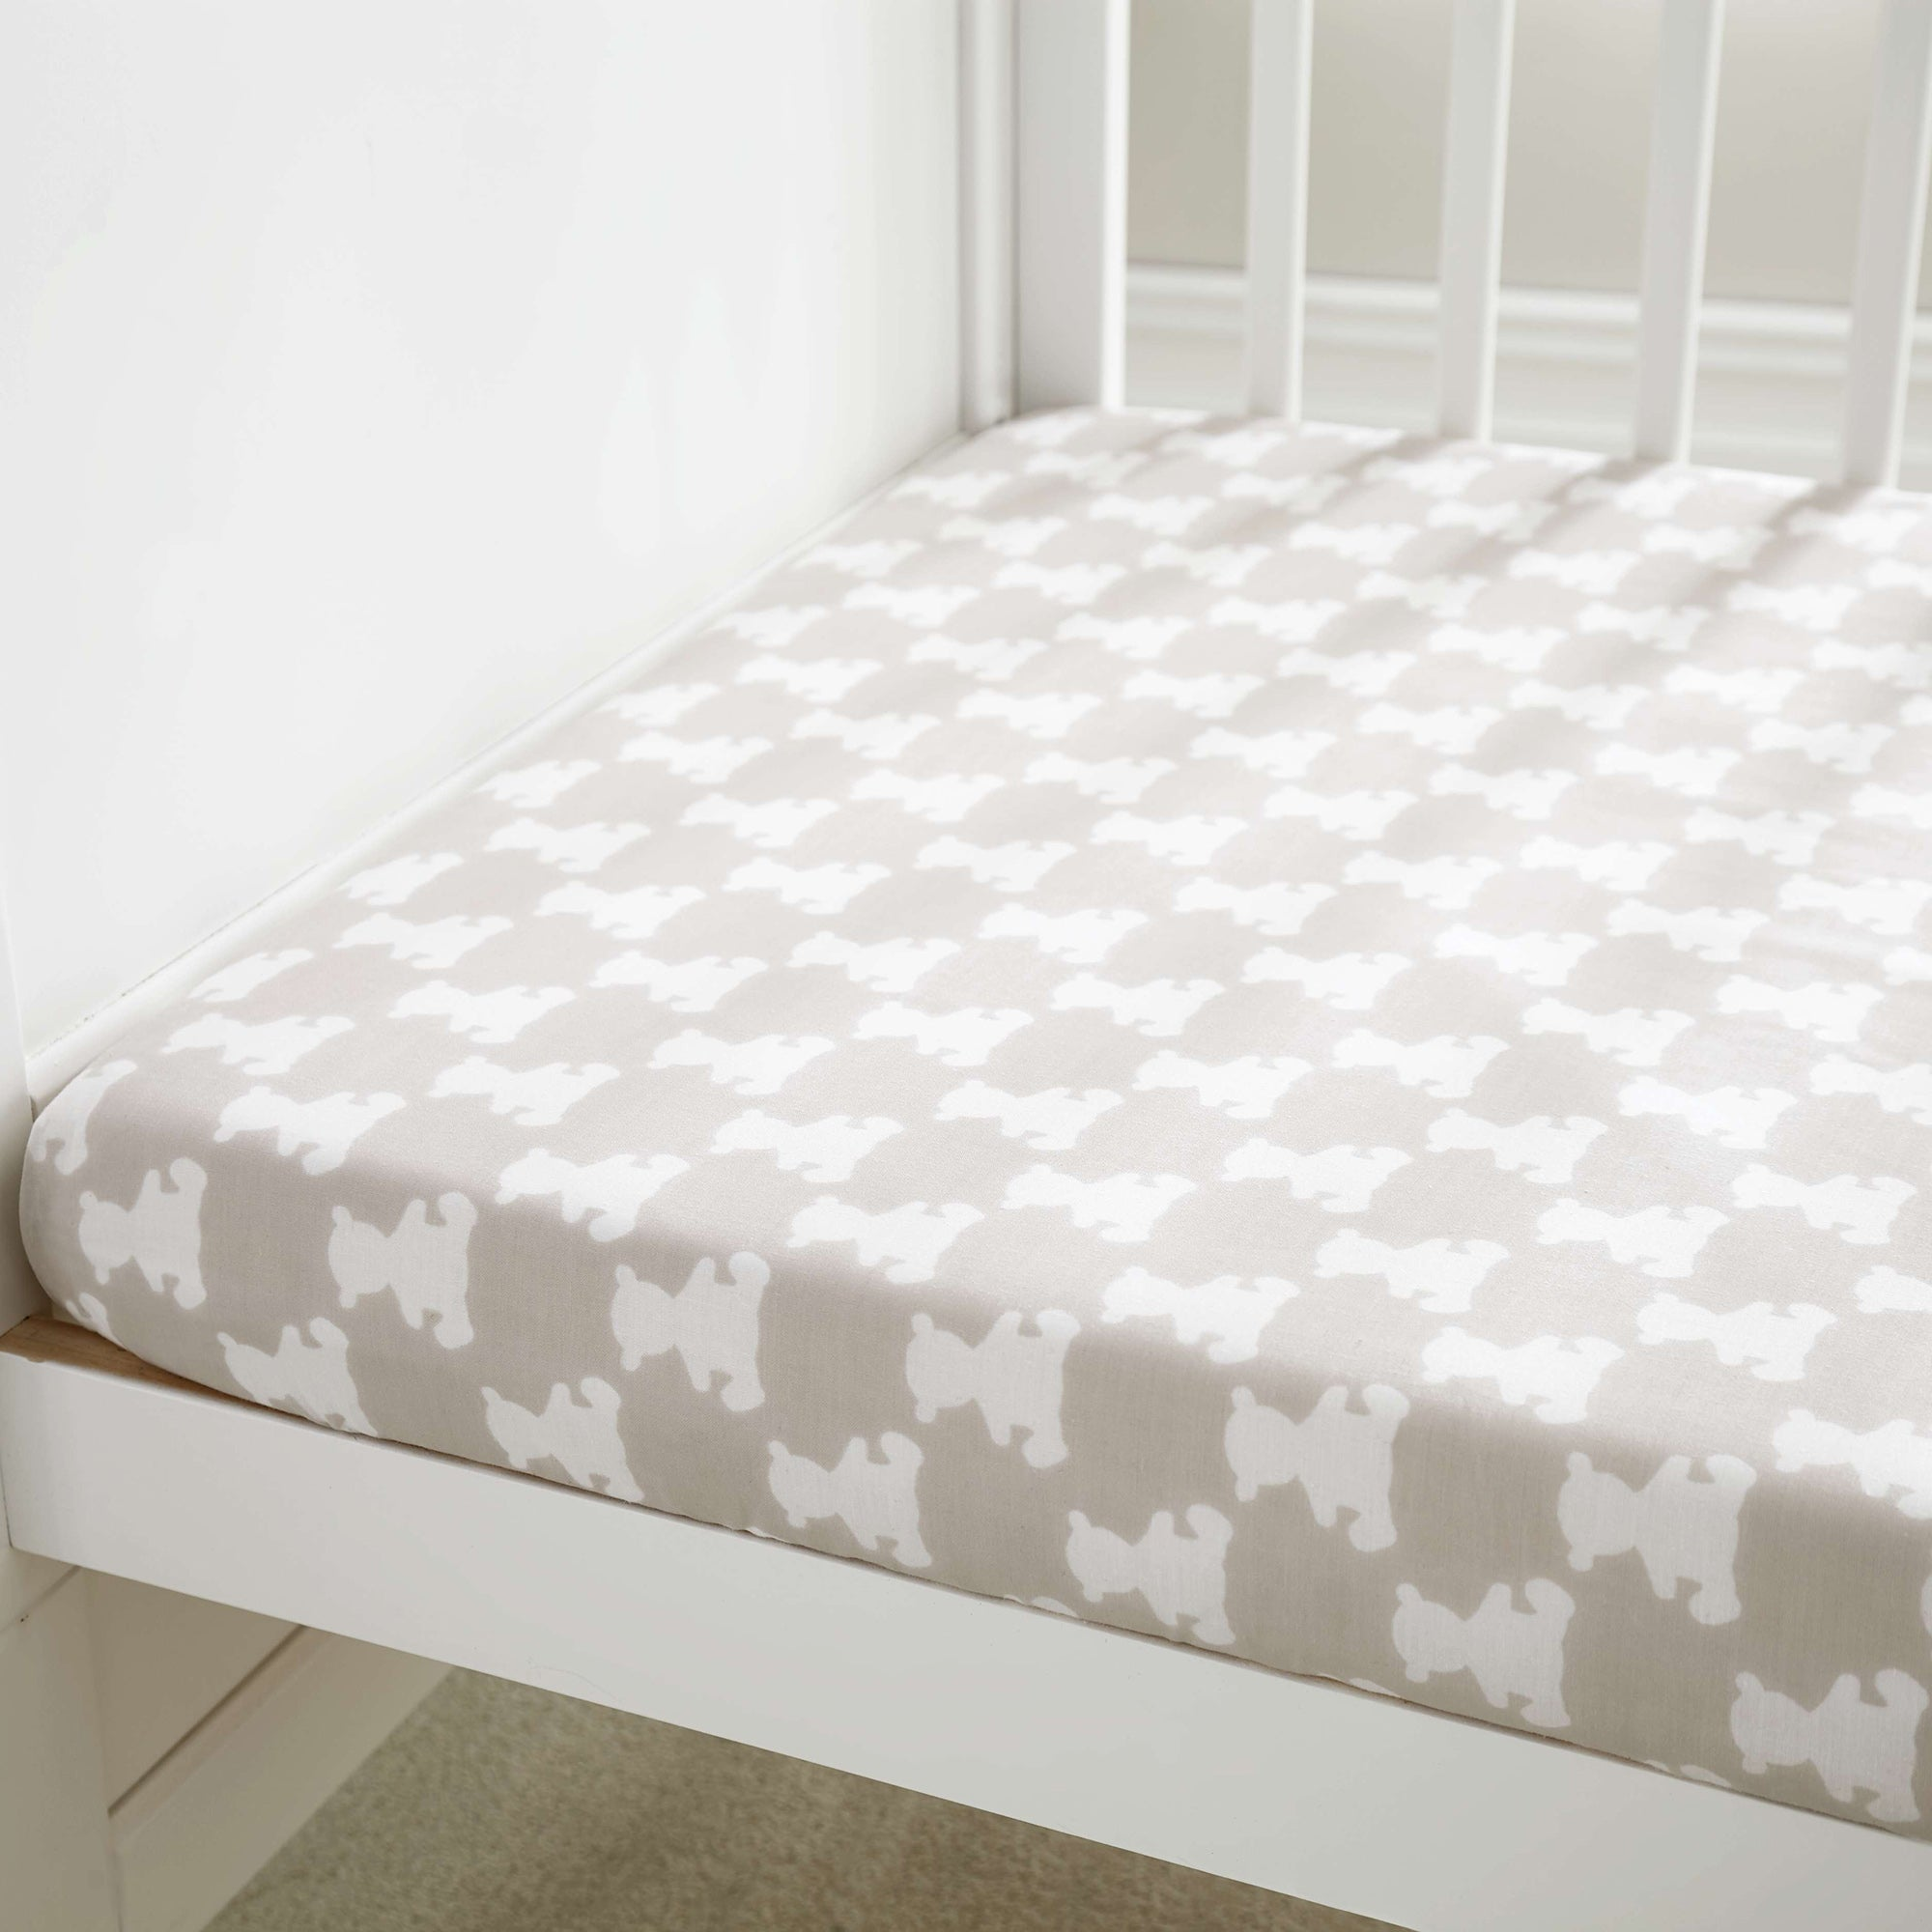 Image of Archie Bear Natural Nursery Cot Bed Fitted Sheet Pair Natural